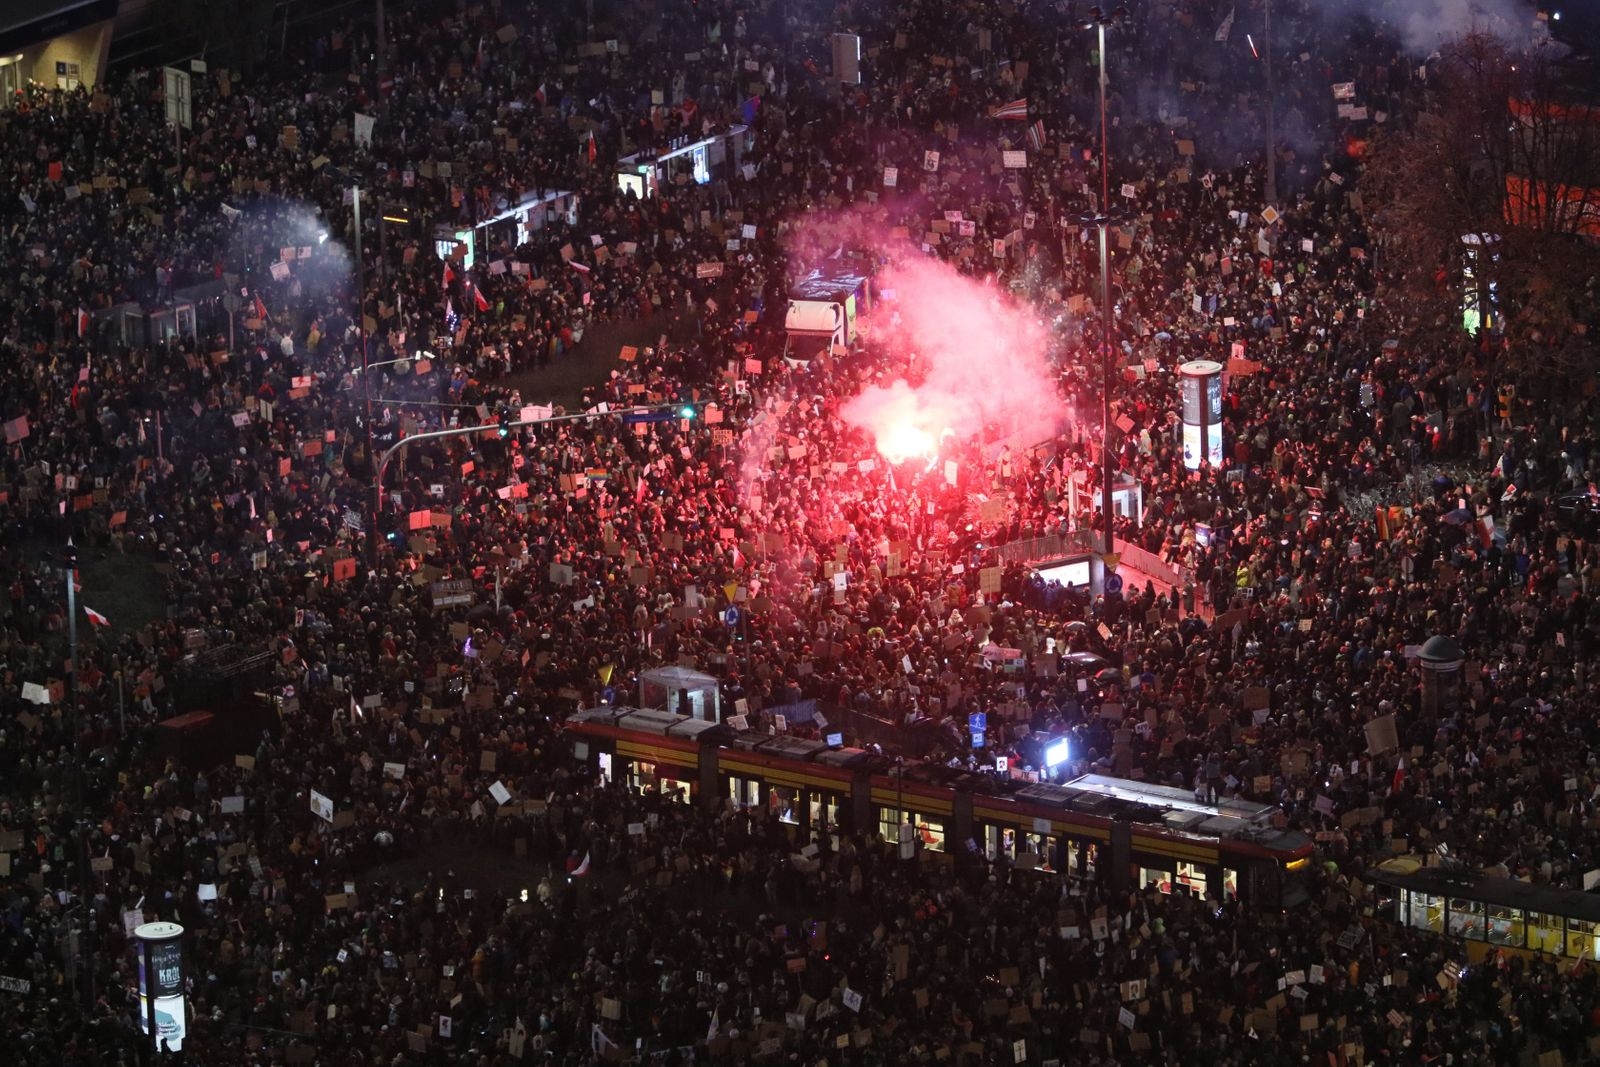 Women's 'March on Warsaw', Poland - 30 Oct 2020